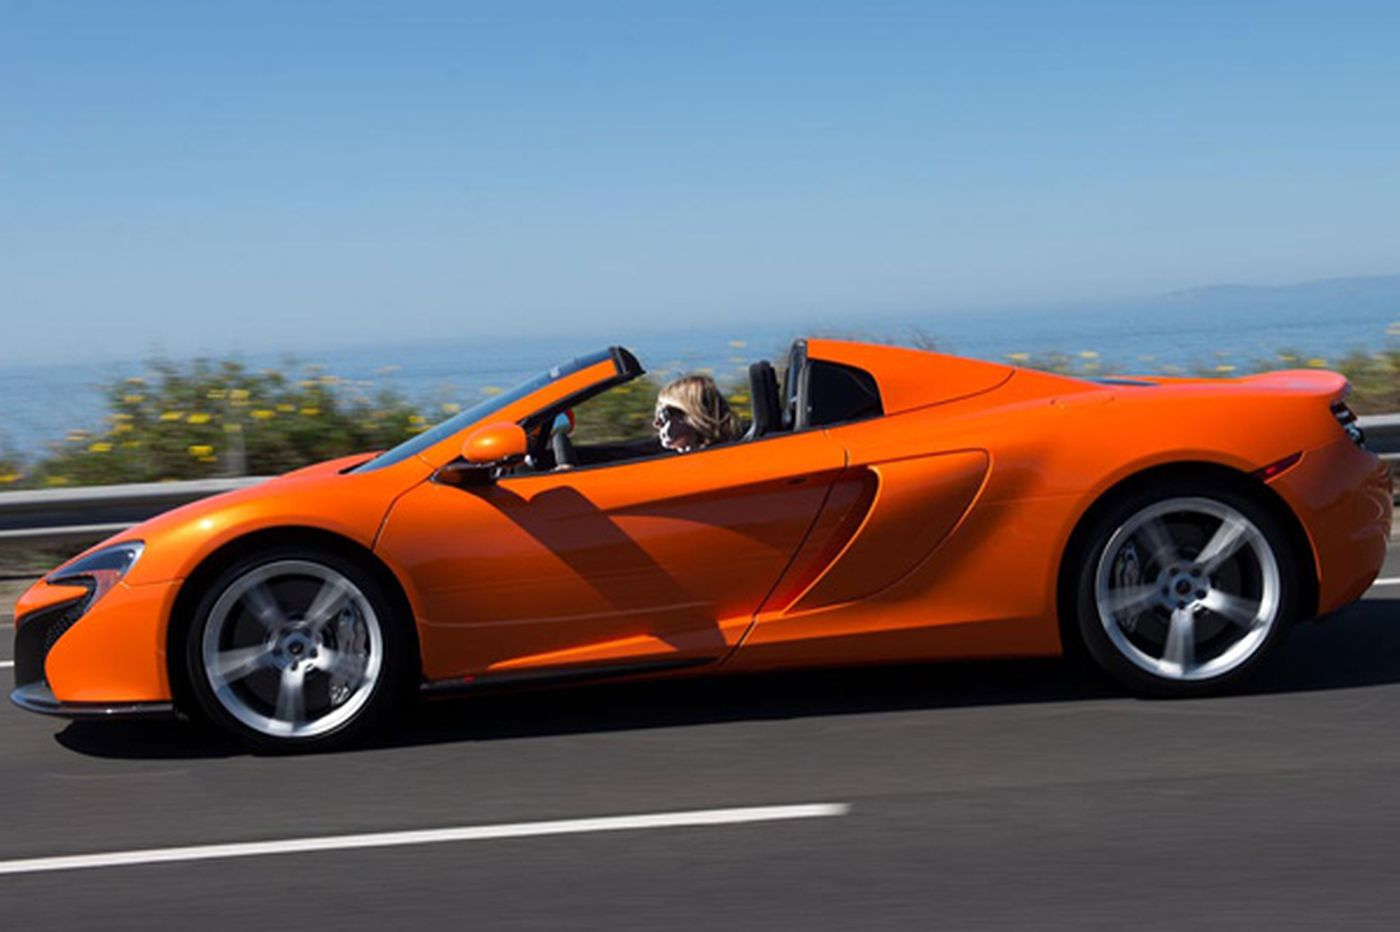 McLaren 650S a step below P1, but who will know?